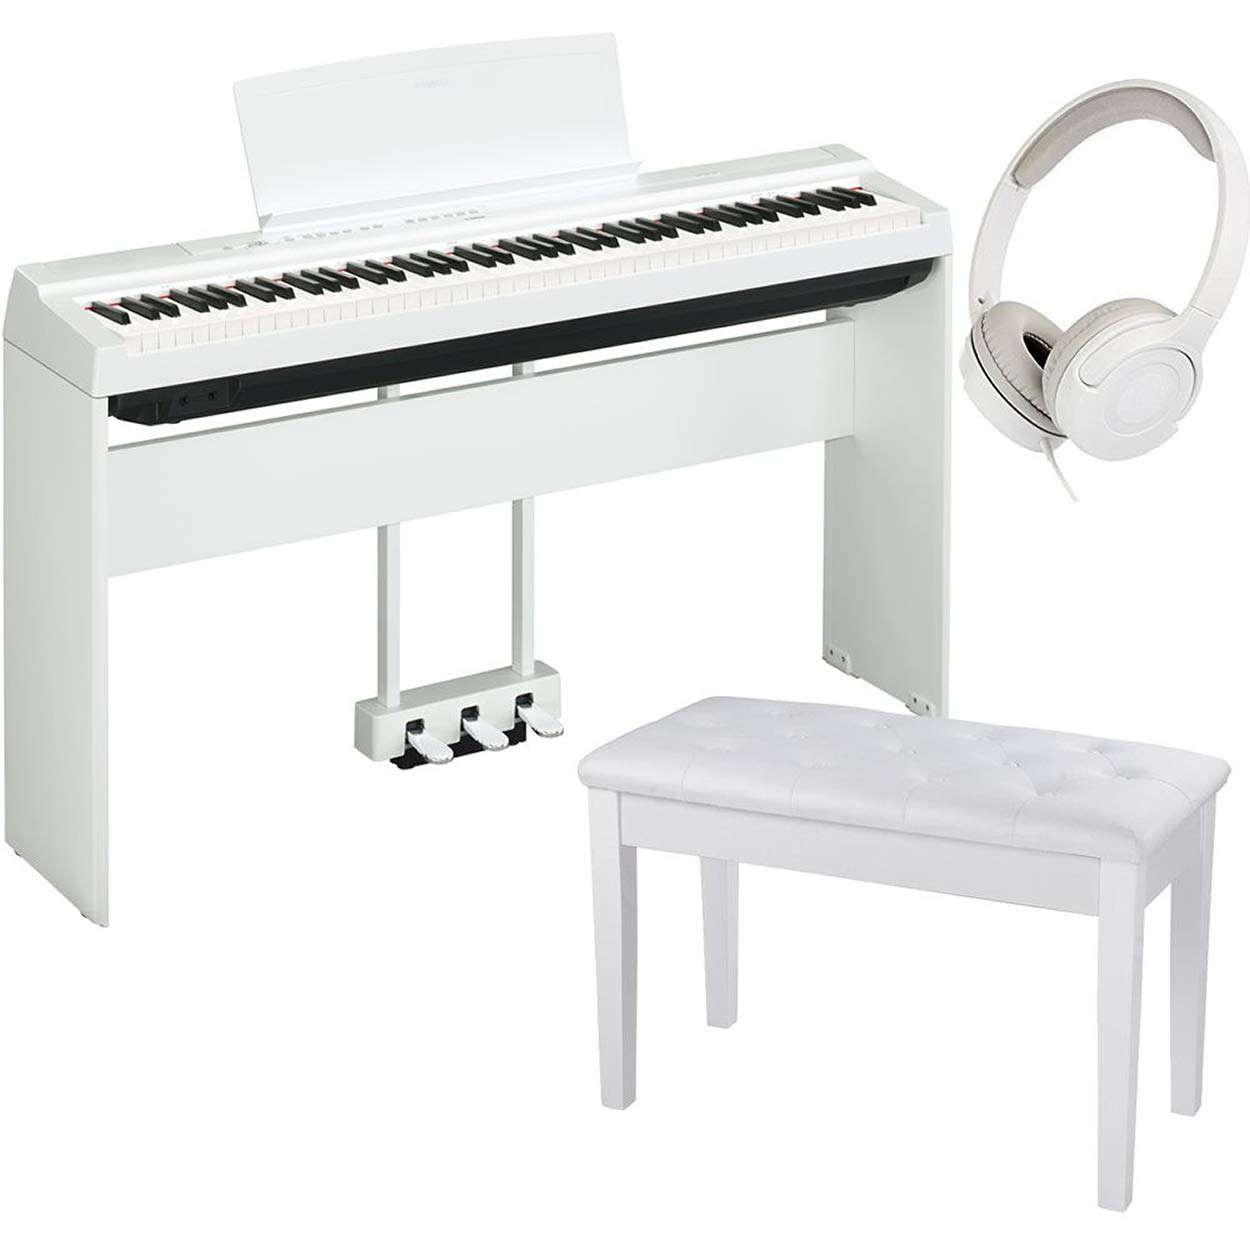 Yamaha P125WH 88-Key Digital Piano White bundled with the Yamaha L125WH Piano Stand, the Yamaha LP1WH 3-Pedal Unit, Padded Piano Bench, and On-Ear Stereo Headphones by Genesis Bundles